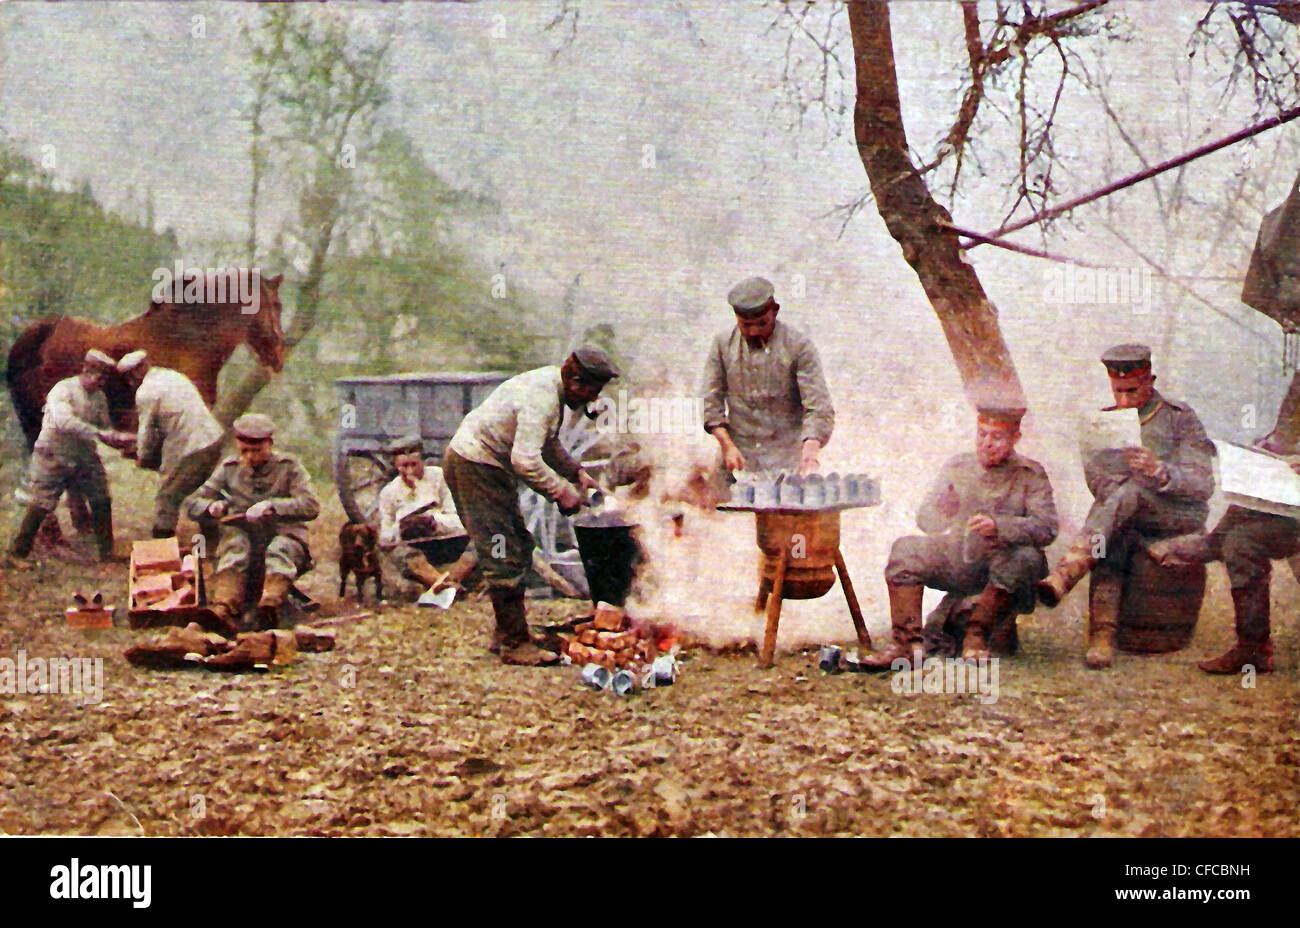 group, German, soldiers, army, military, horse, dog, camp, forest, Postcard, cooking, army, field kitchen - Stock Image